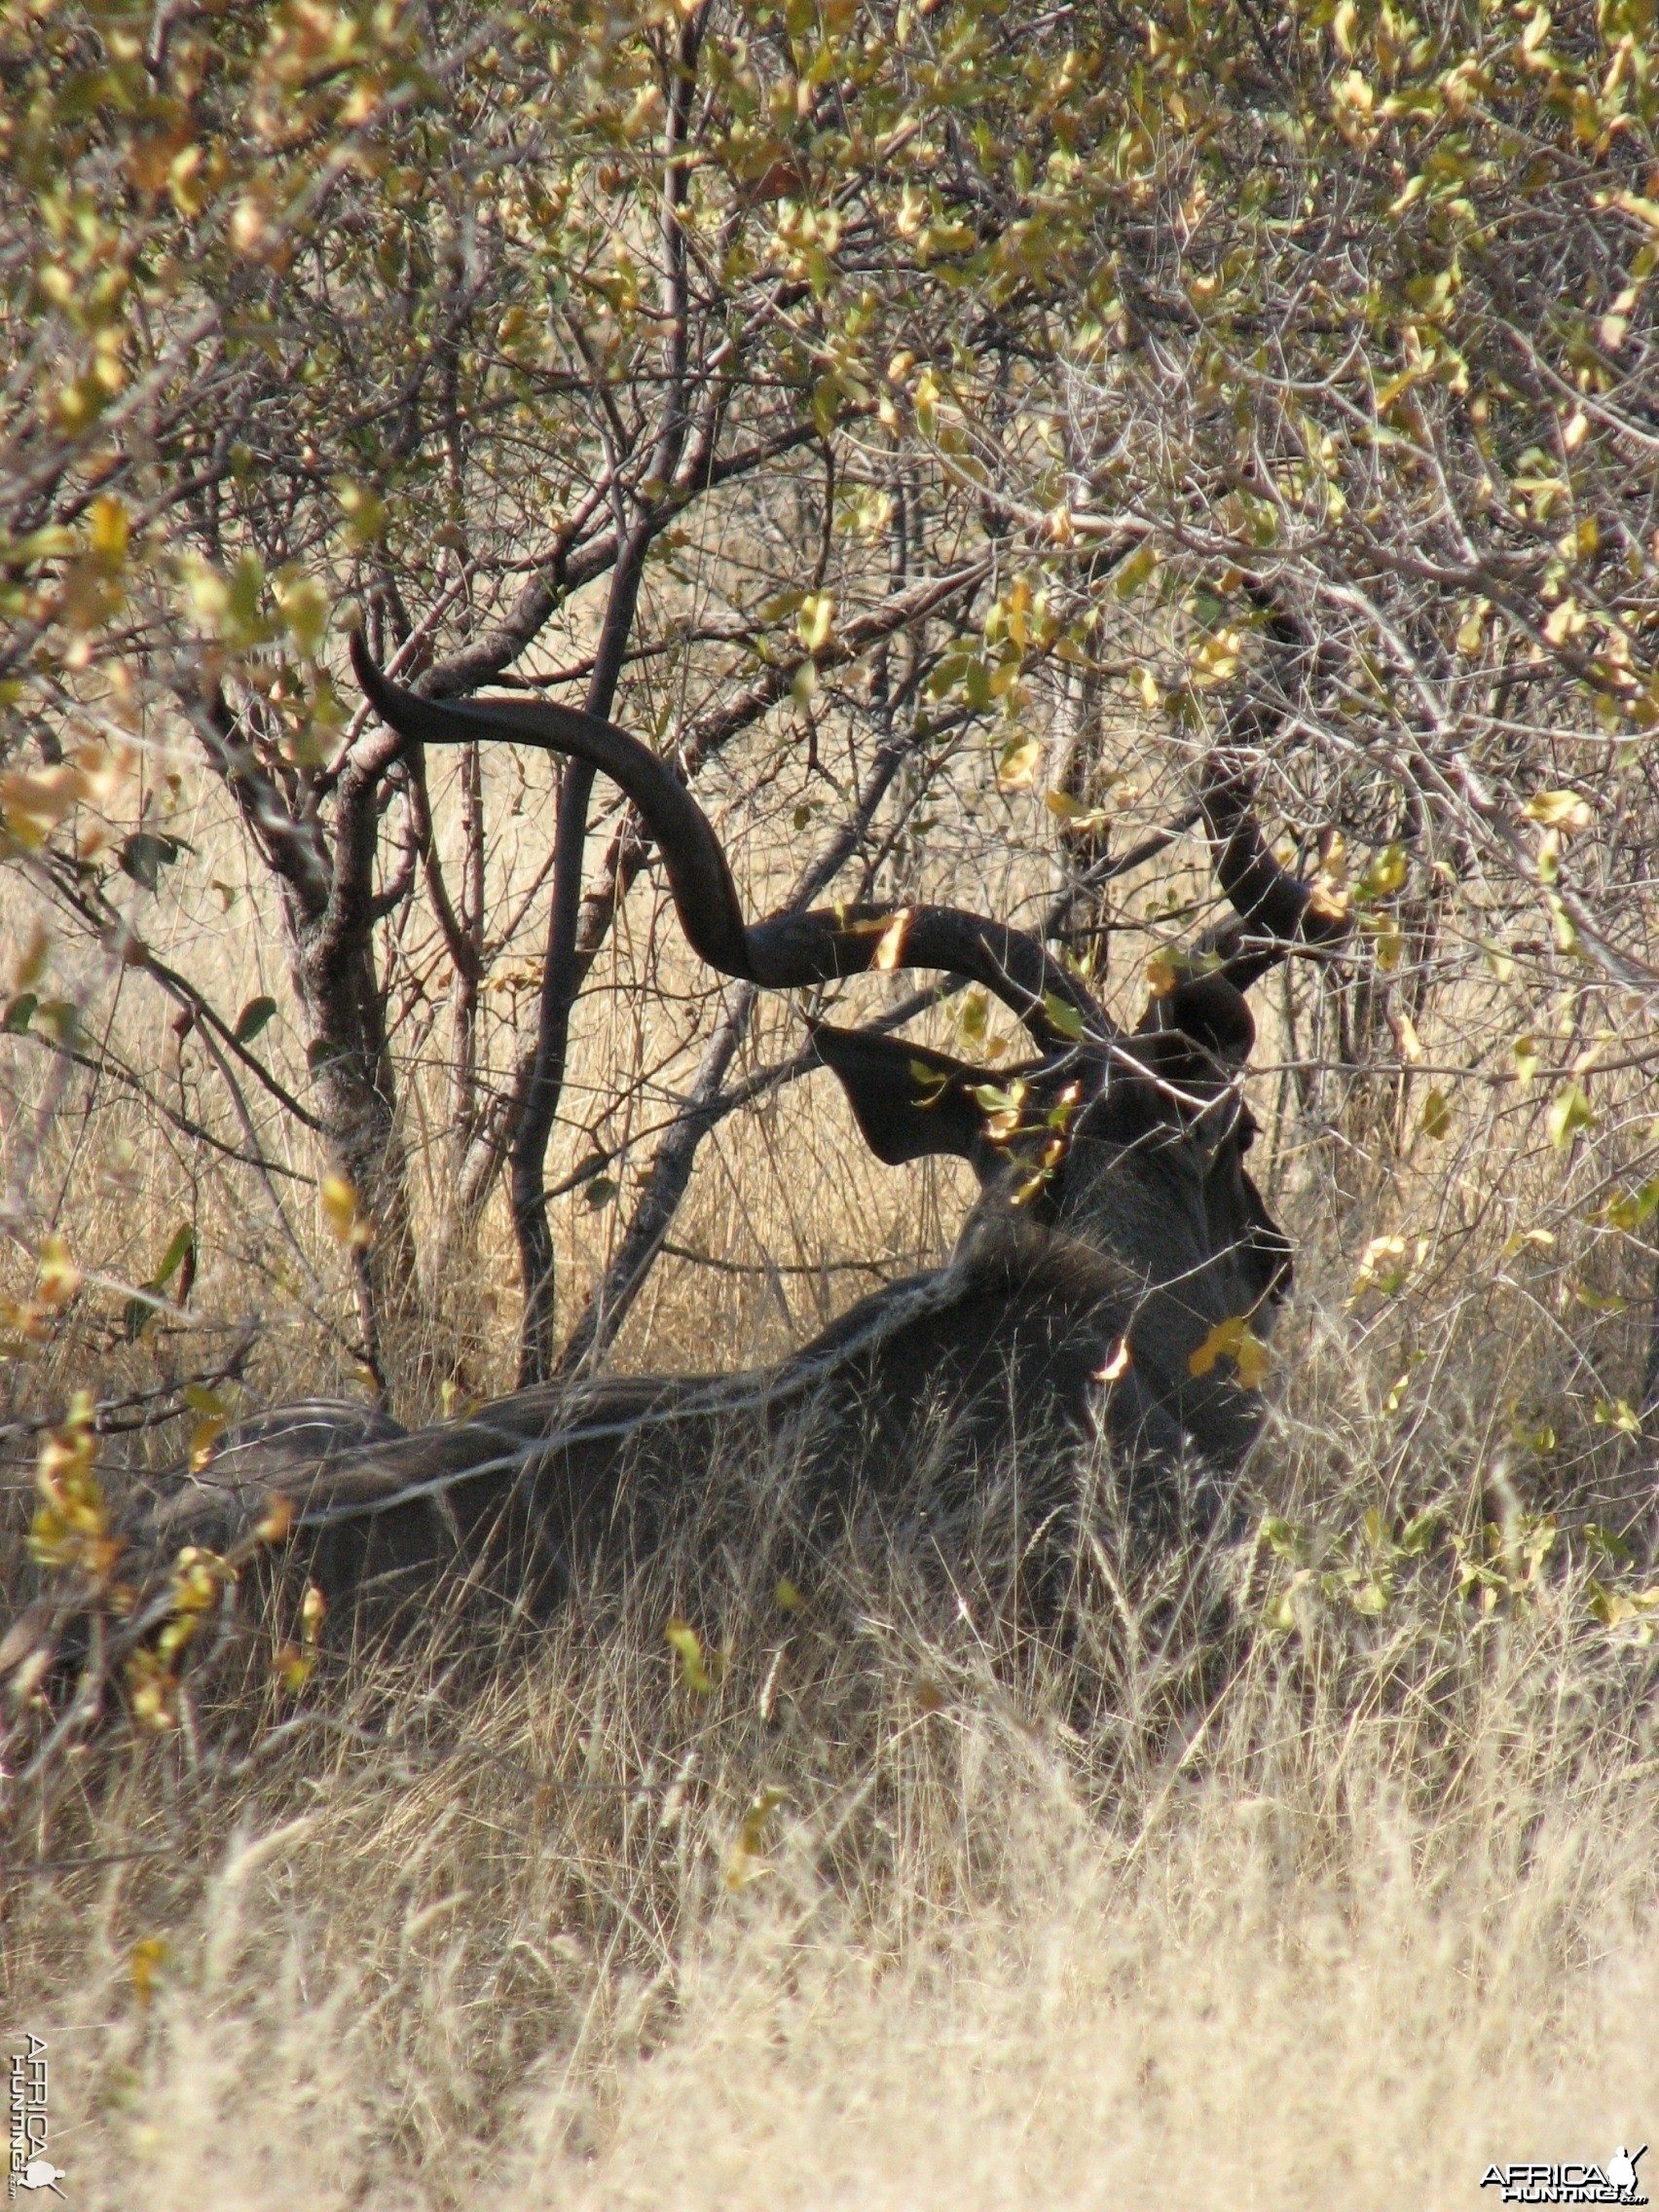 Greater Kudu at Etosha National Park, Namibia